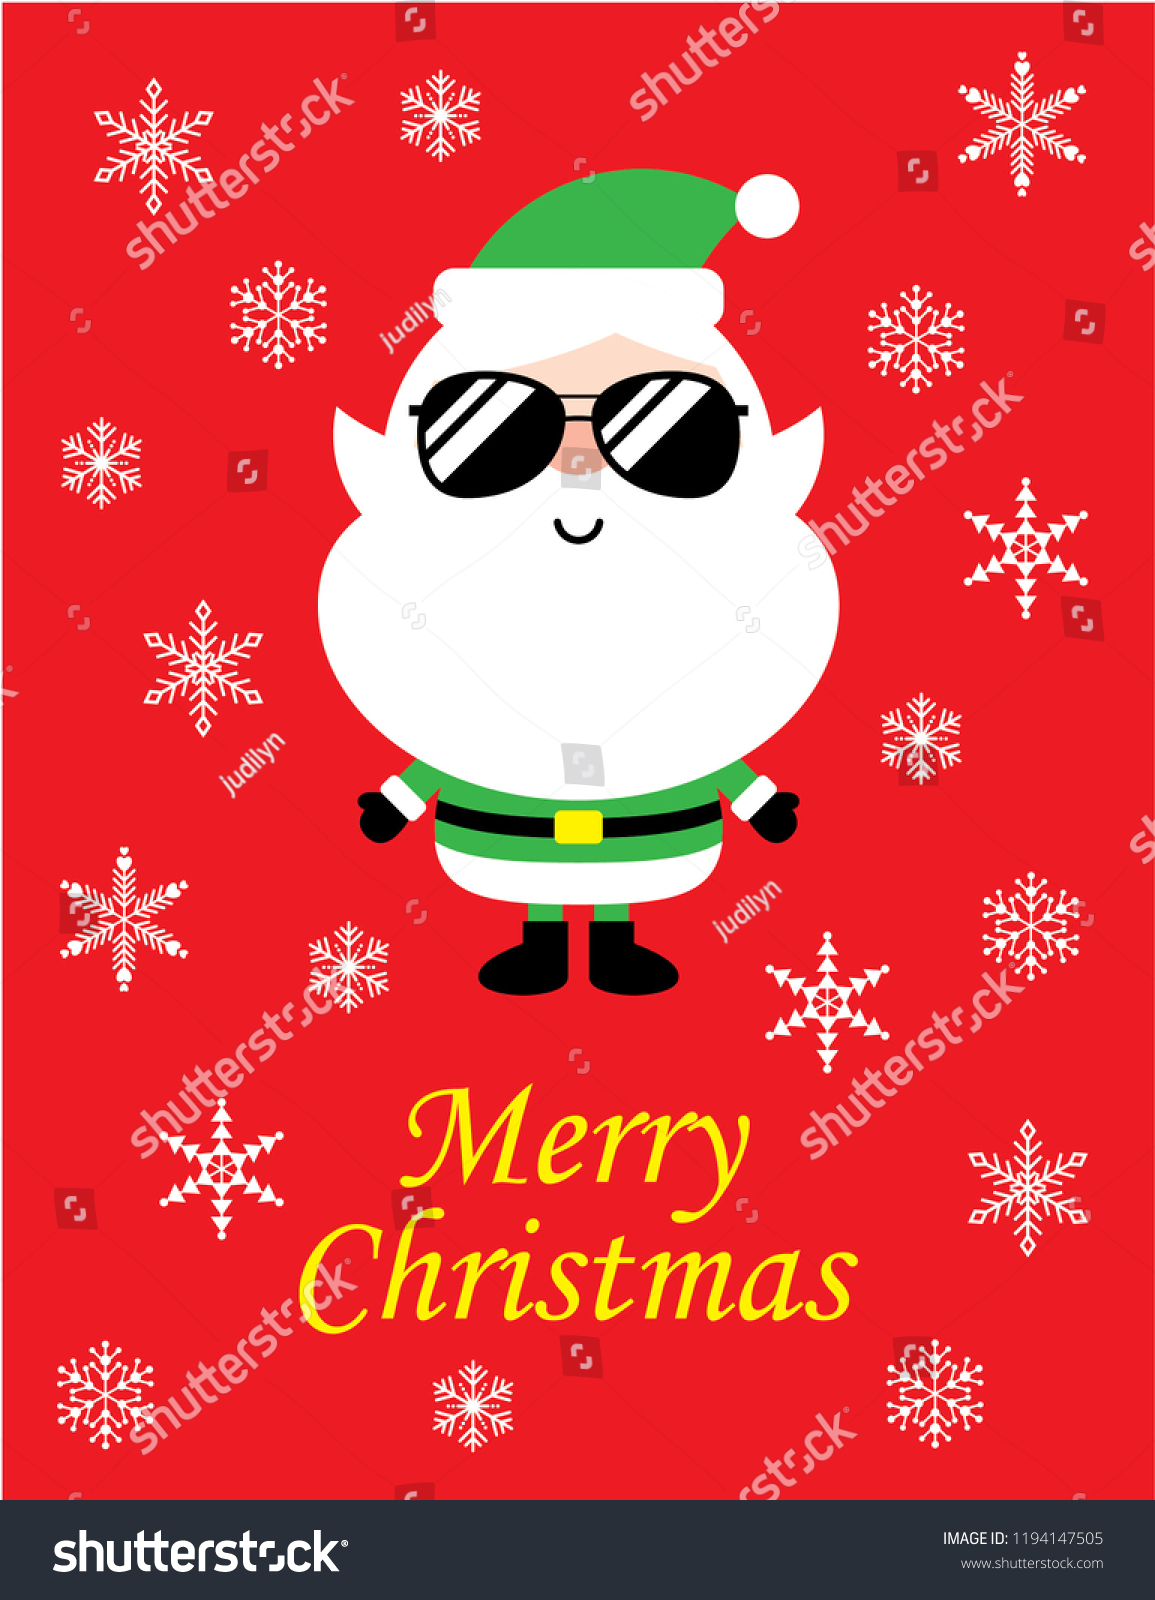 Cute Cool Santa Claus Merry Christmas Stock Vector (Royalty Free ...